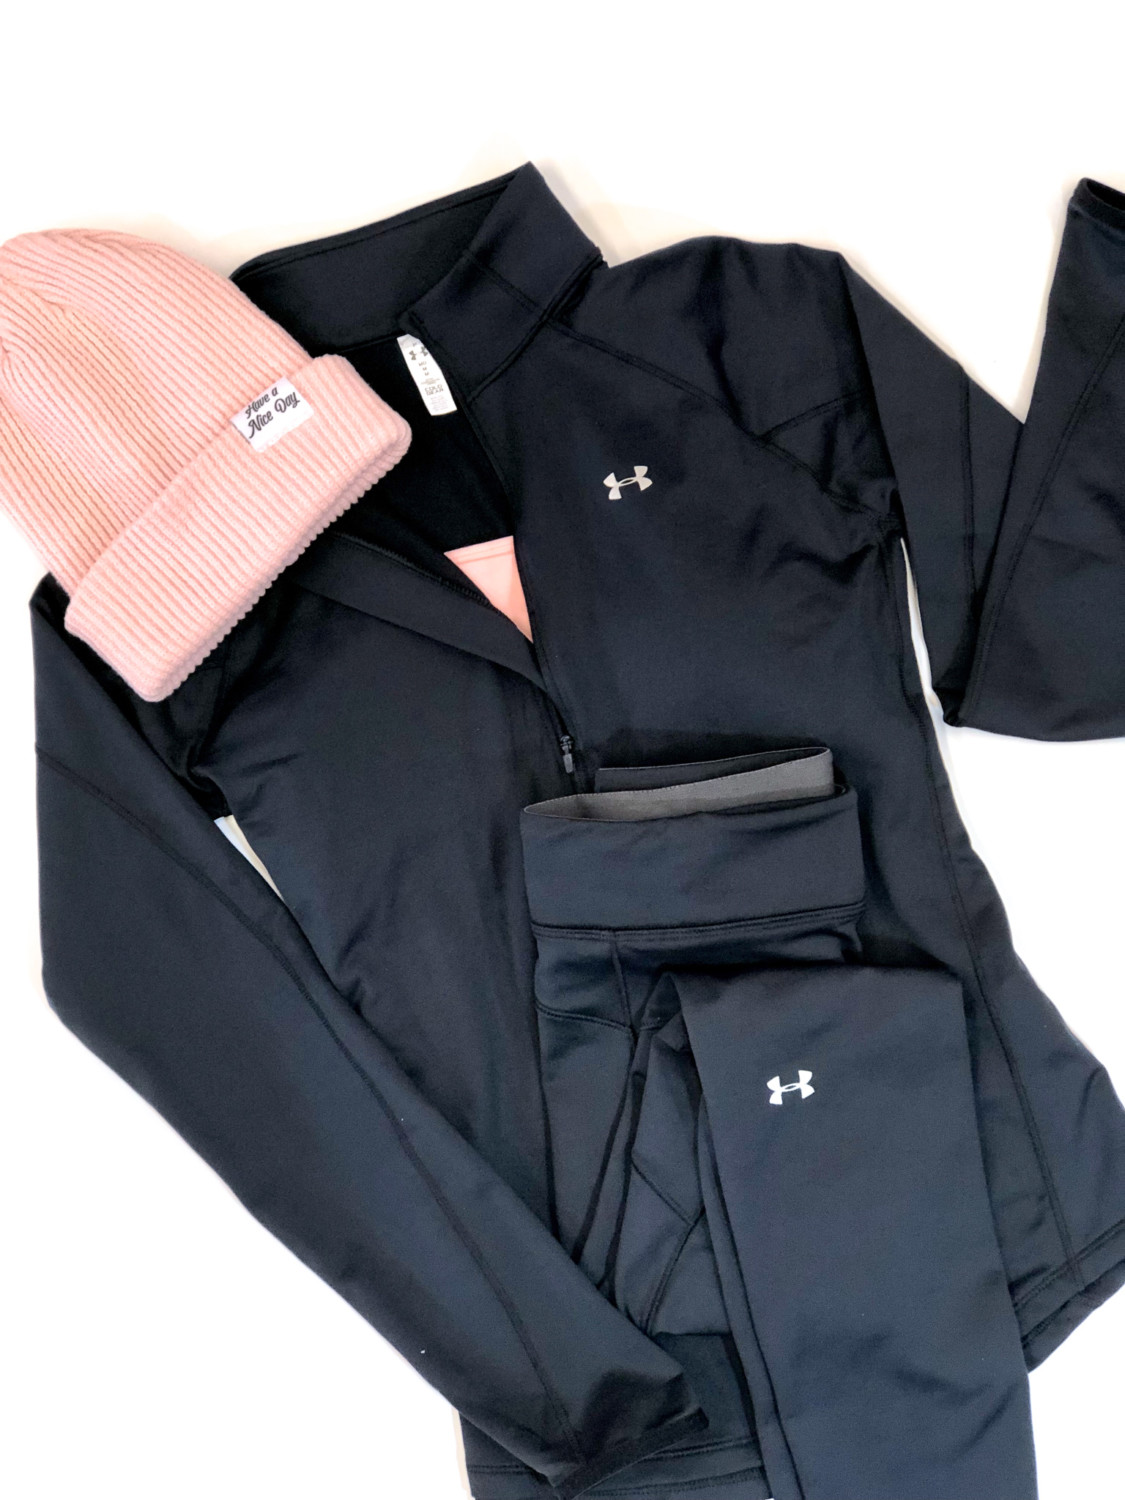 Under Armour Jacket – Original Retail: $60, CWS: $18